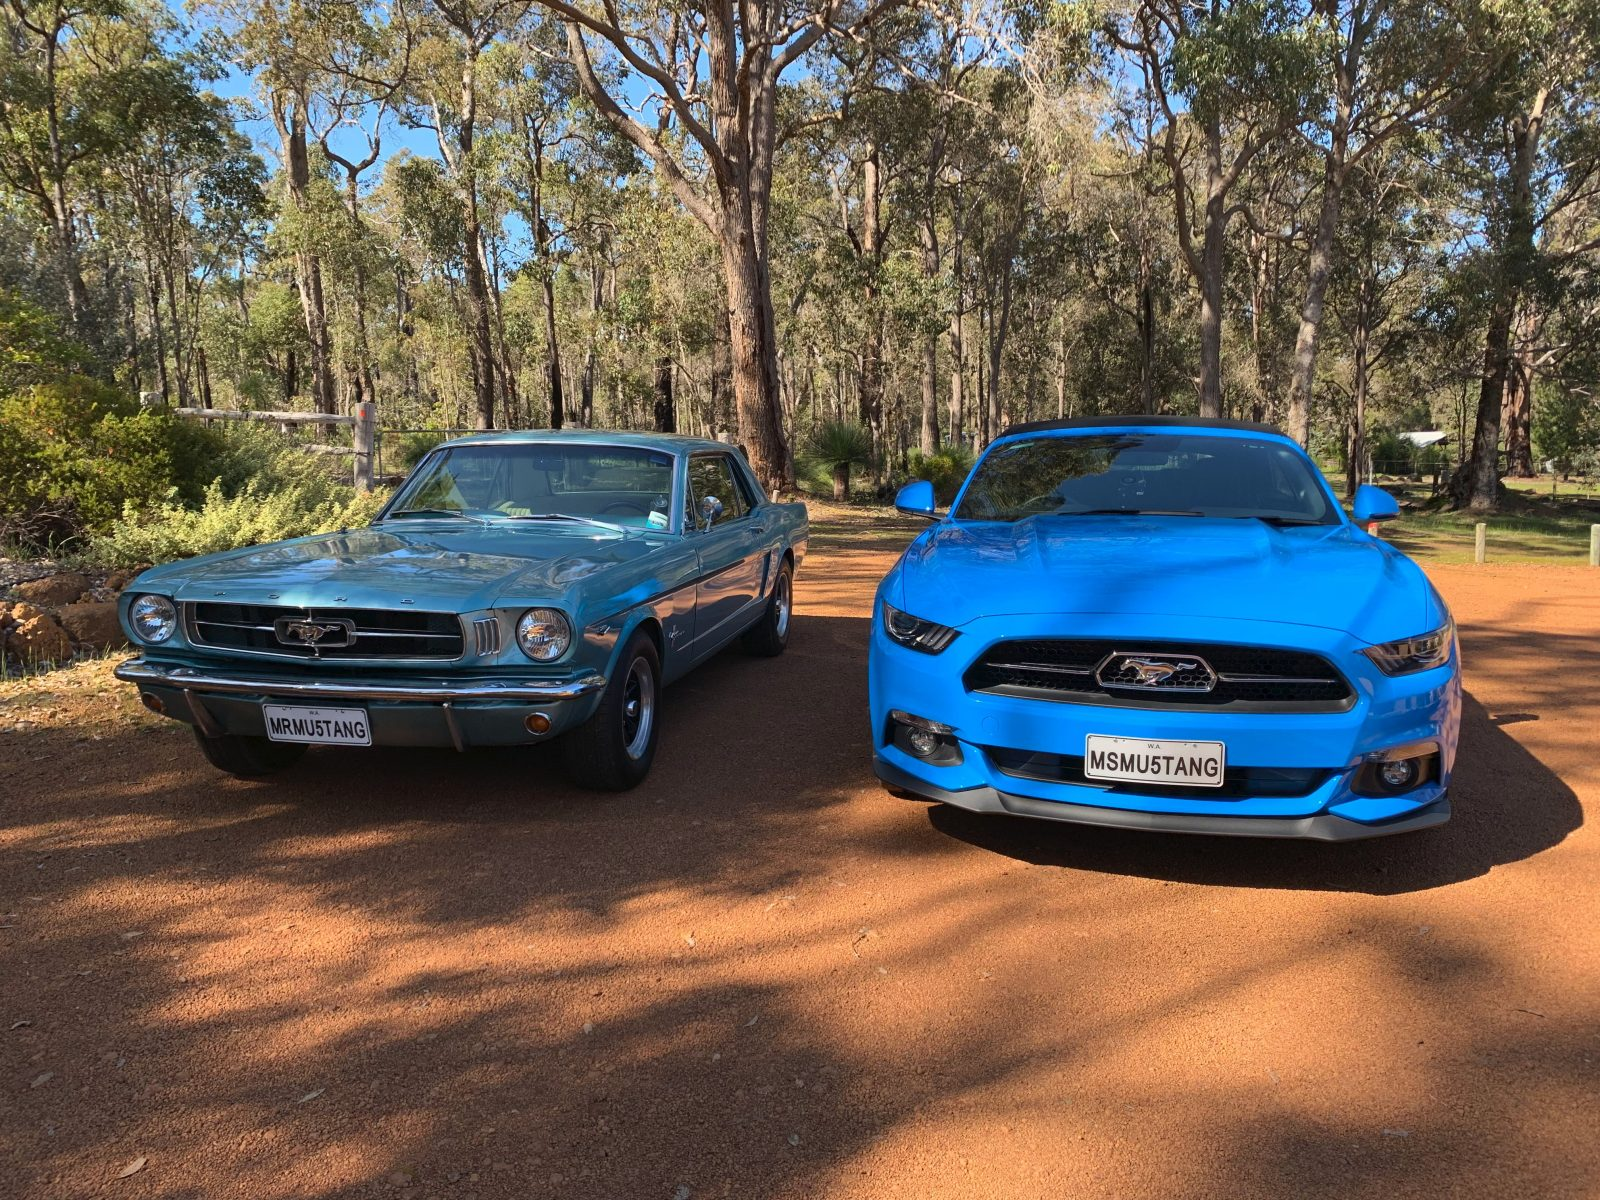 Mr Mustang Hire, Margaret River, Western Australia